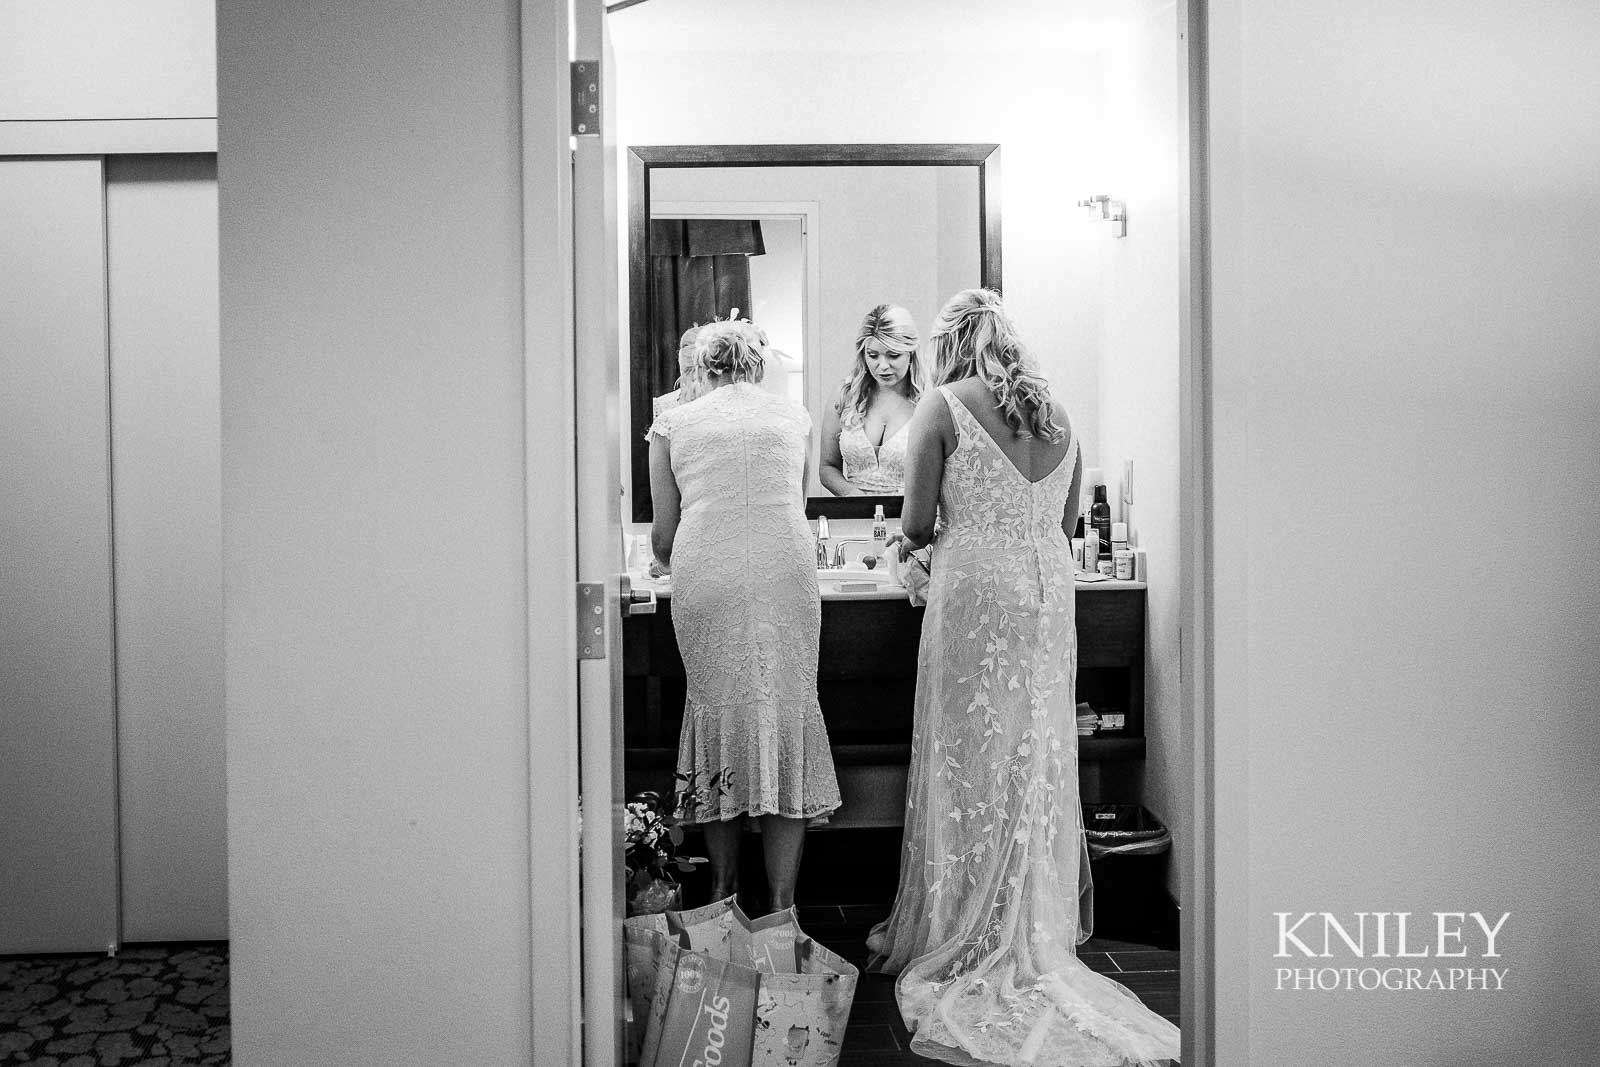 04-Hilton-Garden-Inn-Downtown-Wedding-Getting-Ready-Rochester-NY-Kniley-Photography.jpg